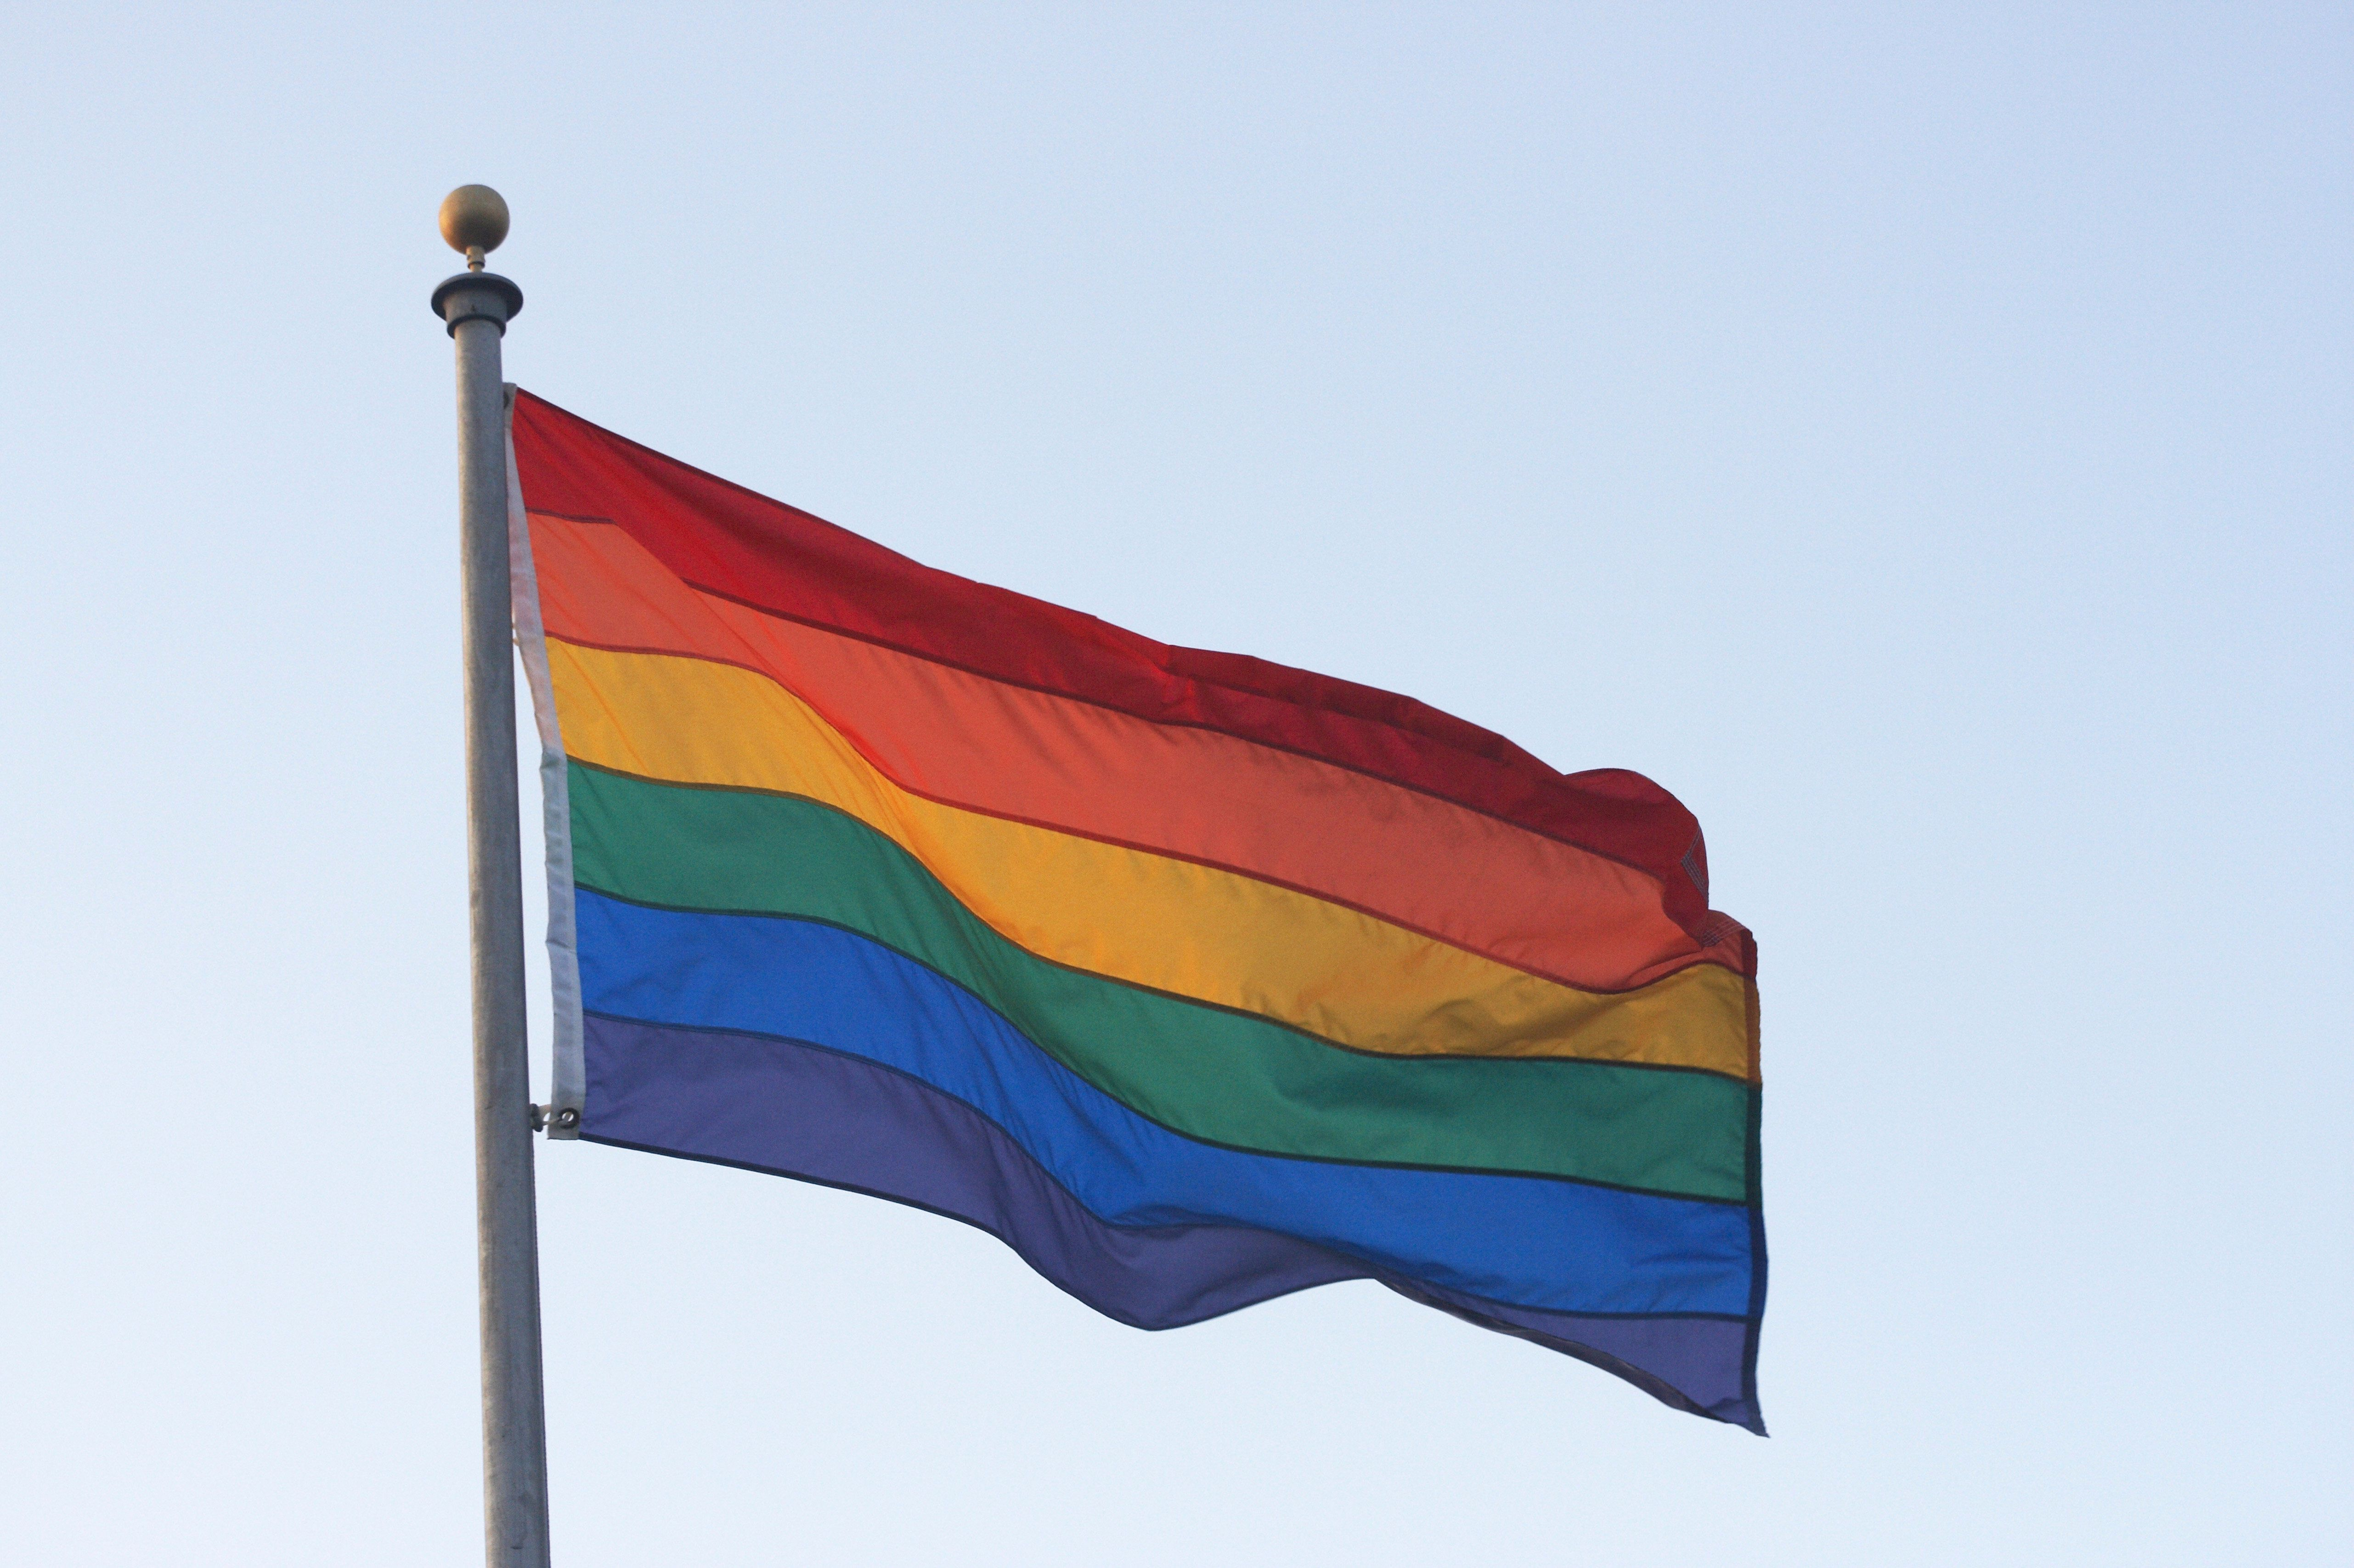 Malta Becomes First European Nation To Ban Gay Conversion